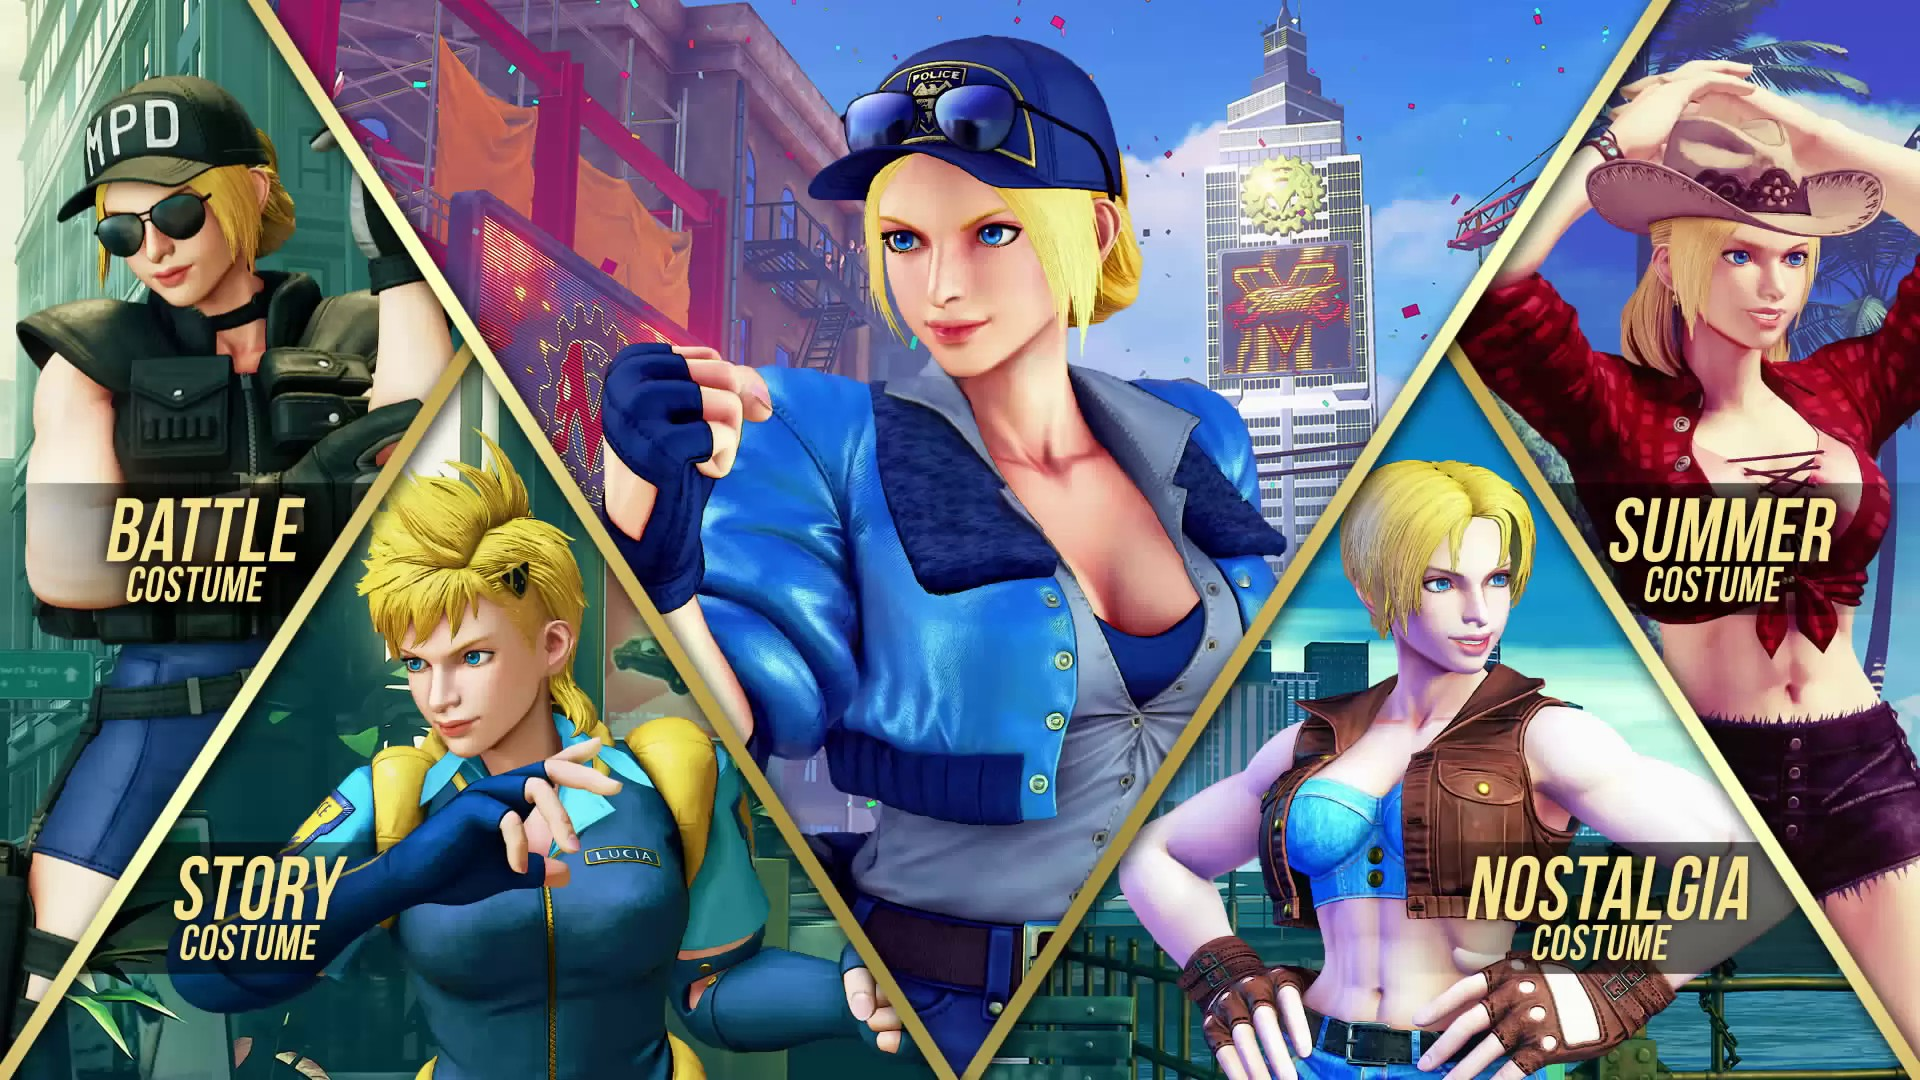 New Street Fighter V Characters Leaked Ahead of Evo 2019